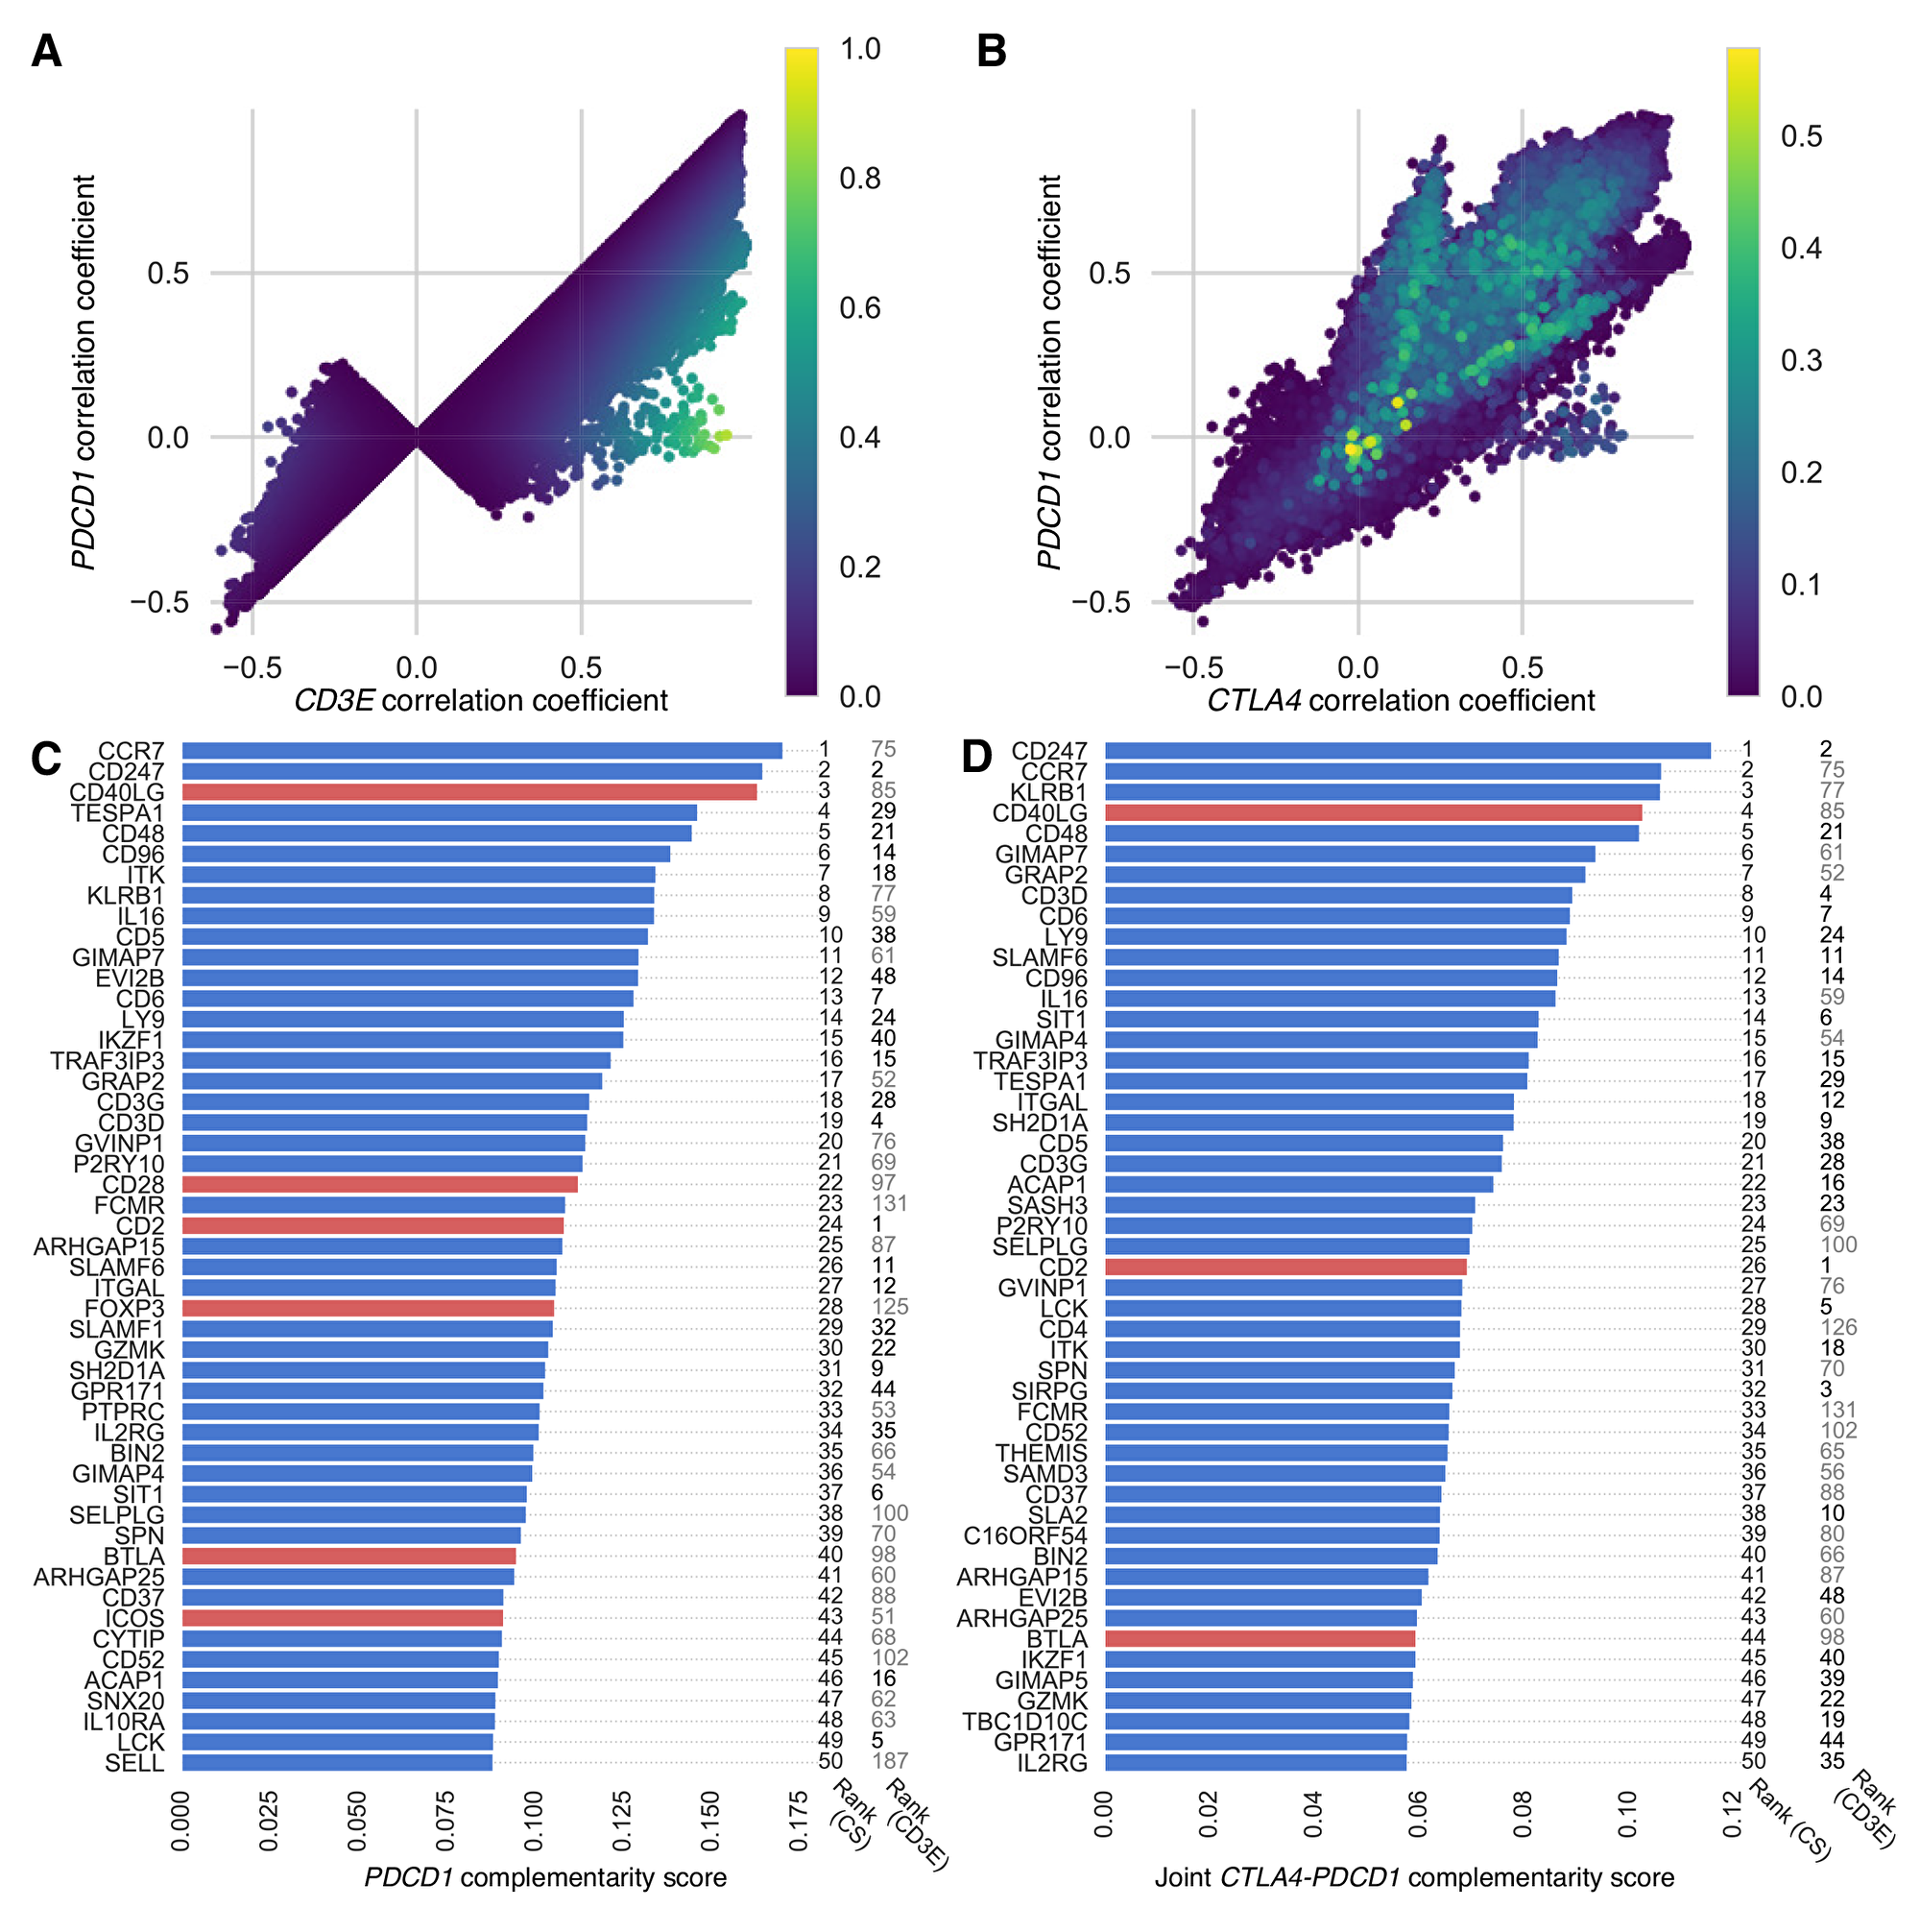 PDCD1-complementarity and joint CTLA4-PDCD1 complementarity scores of exome-wide gene list.